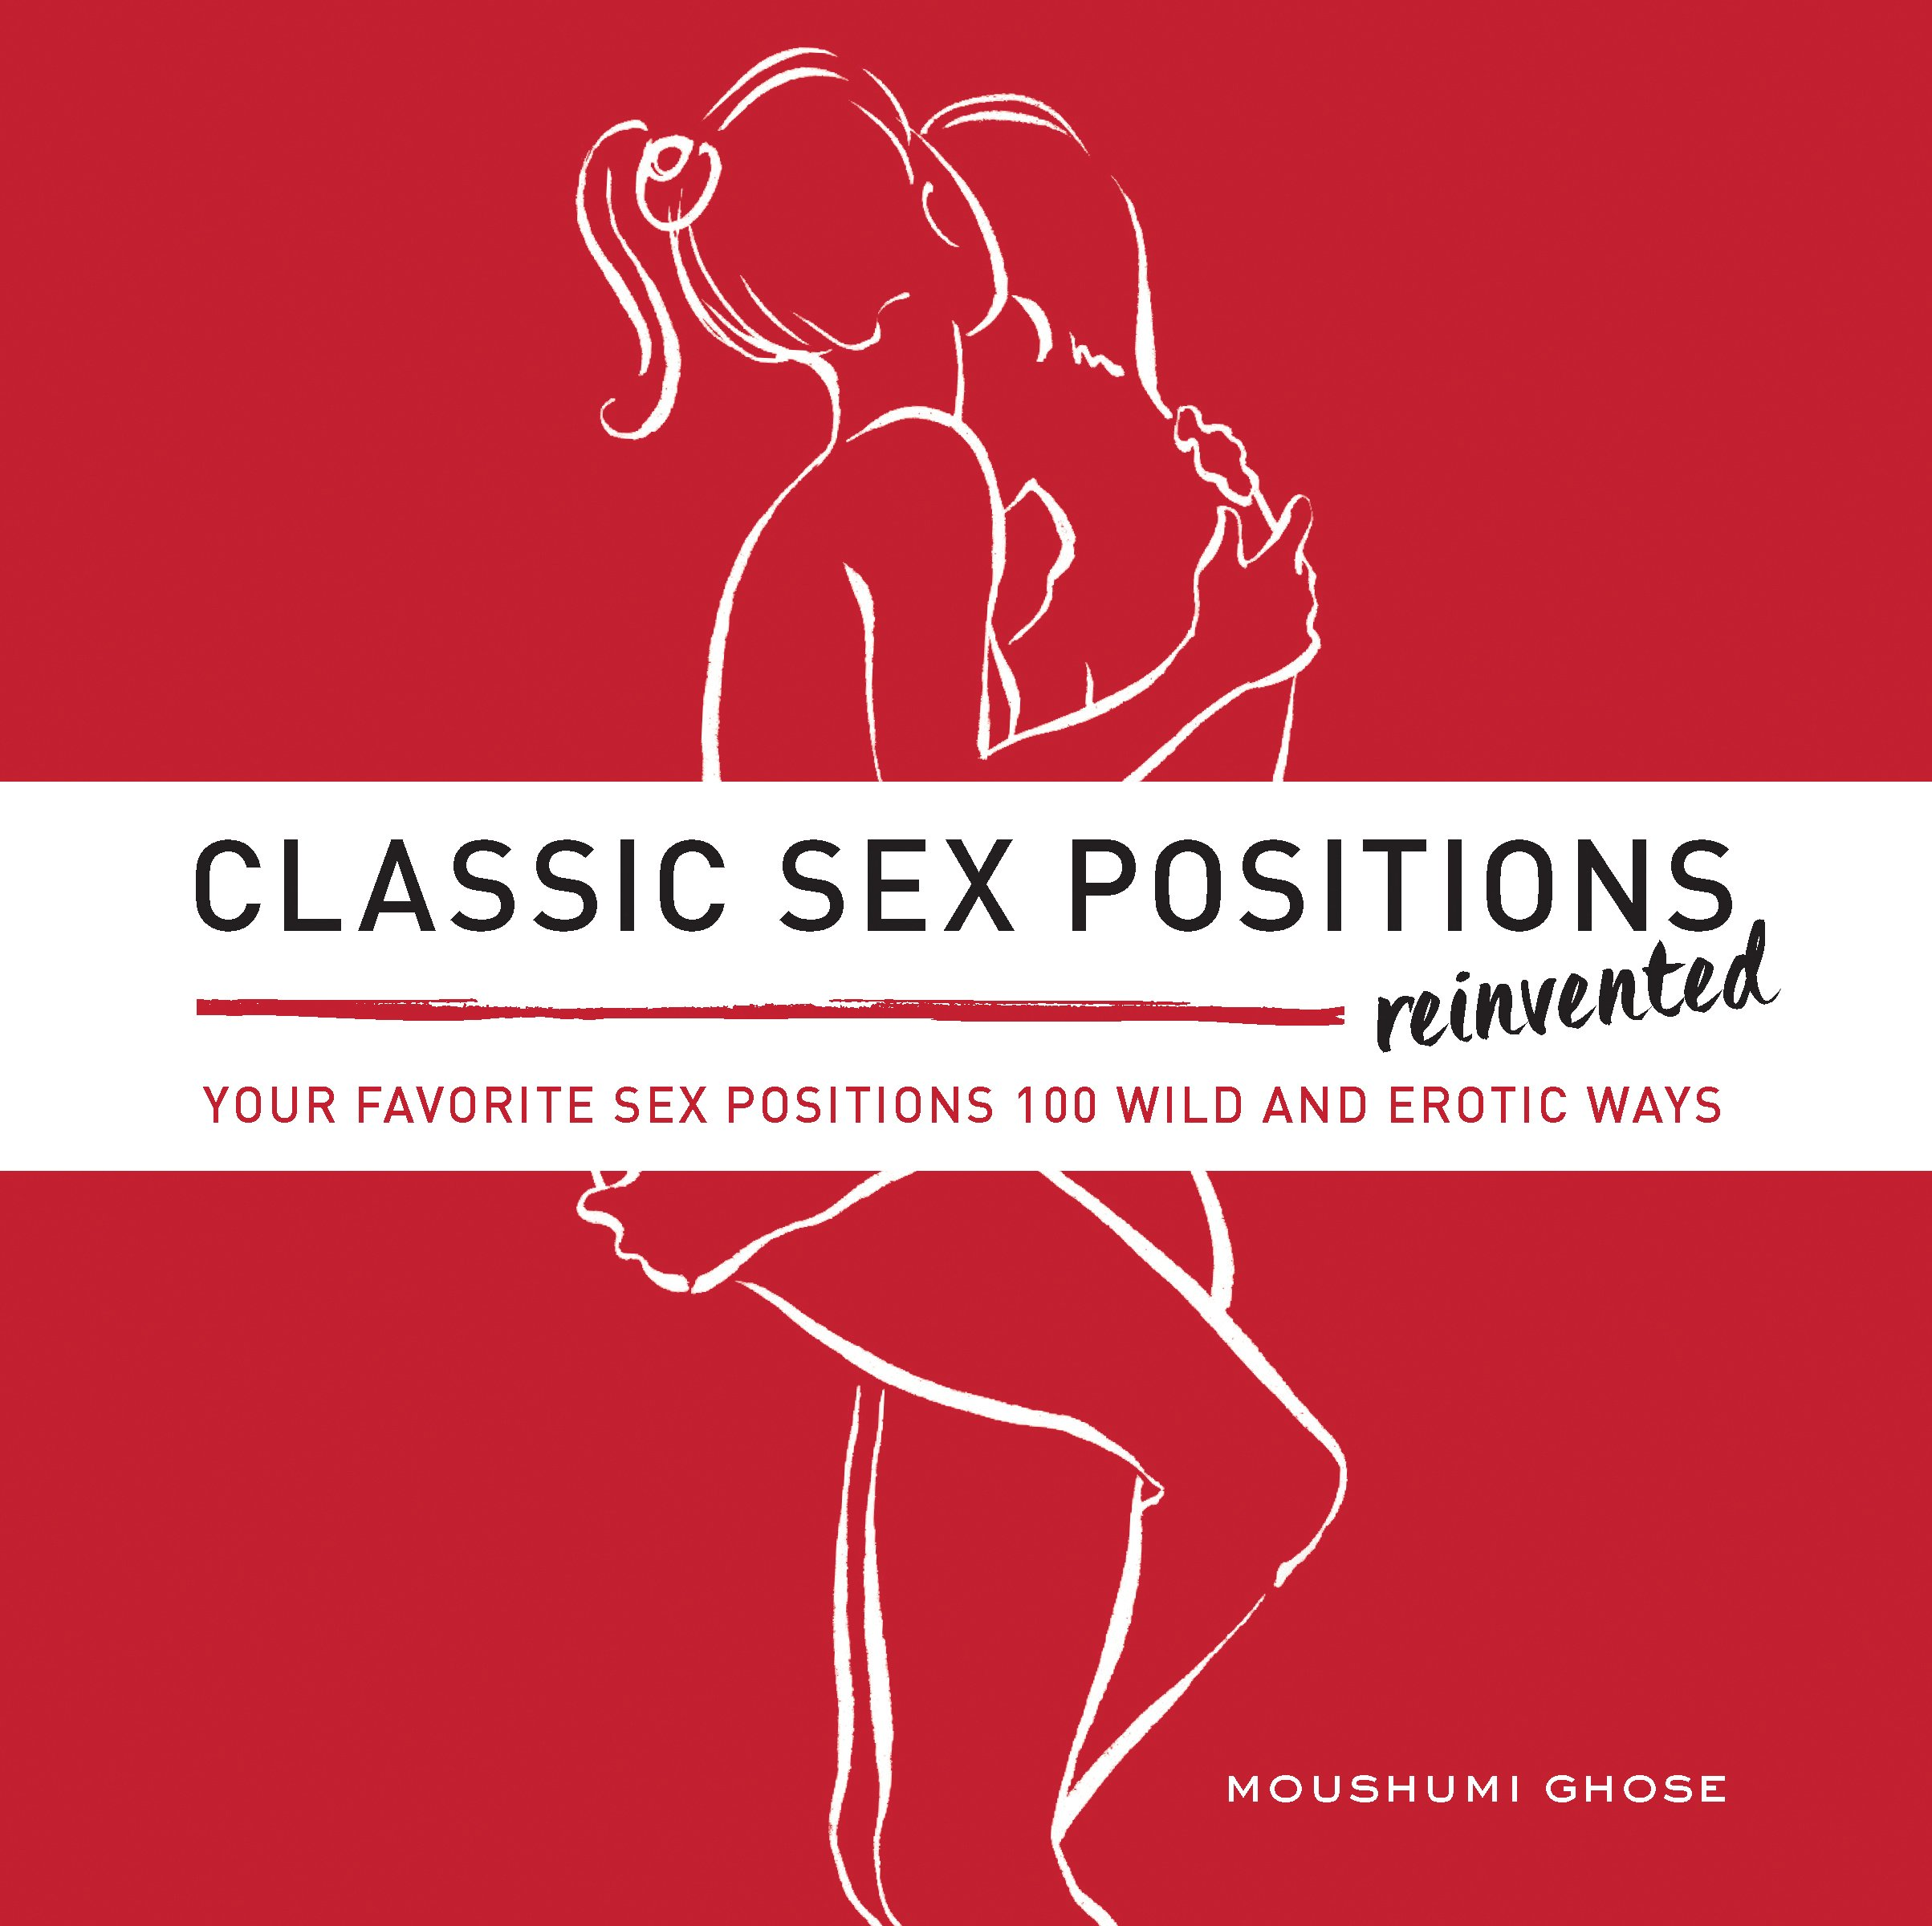 Favorate sex positions